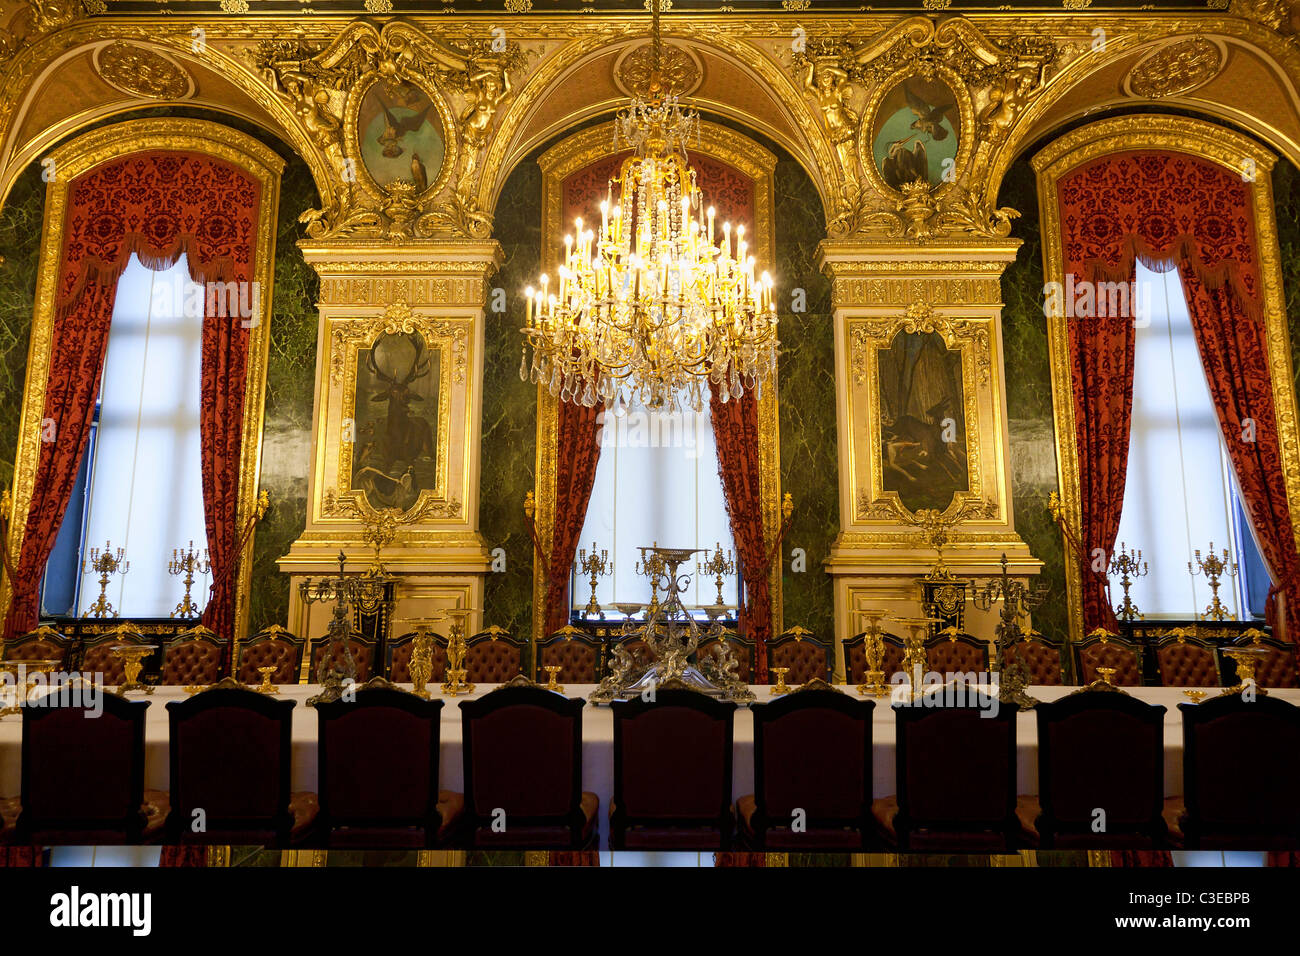 France, Paris, the Louvre Museum, apartments of Napoleon III located in the Richelieu Wing - Stock Image